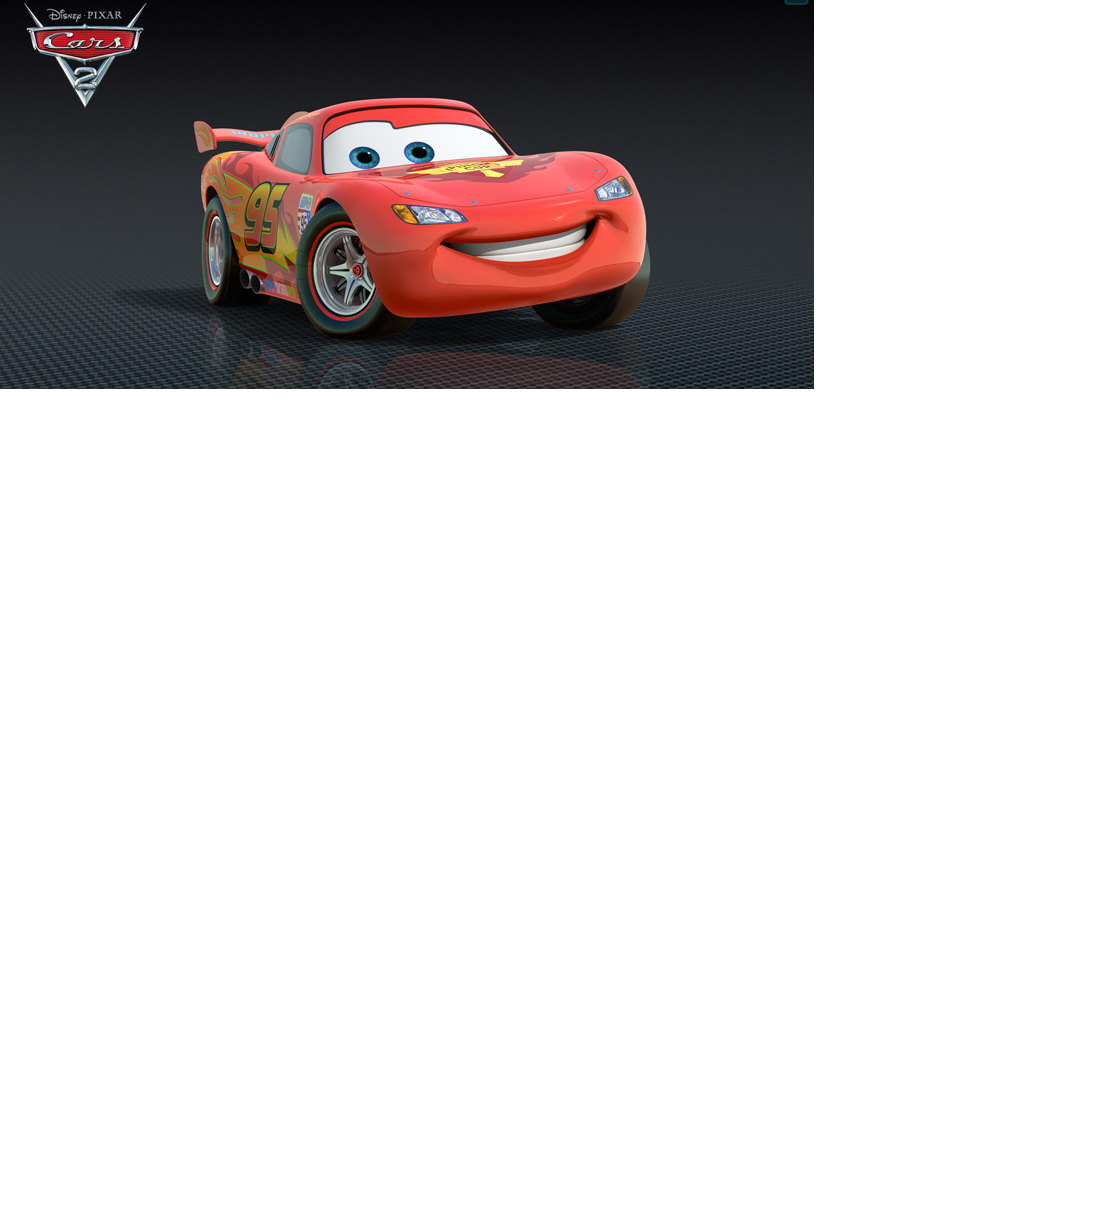 Disney pixar cars 2 disney pixar cars lightning mcqueen